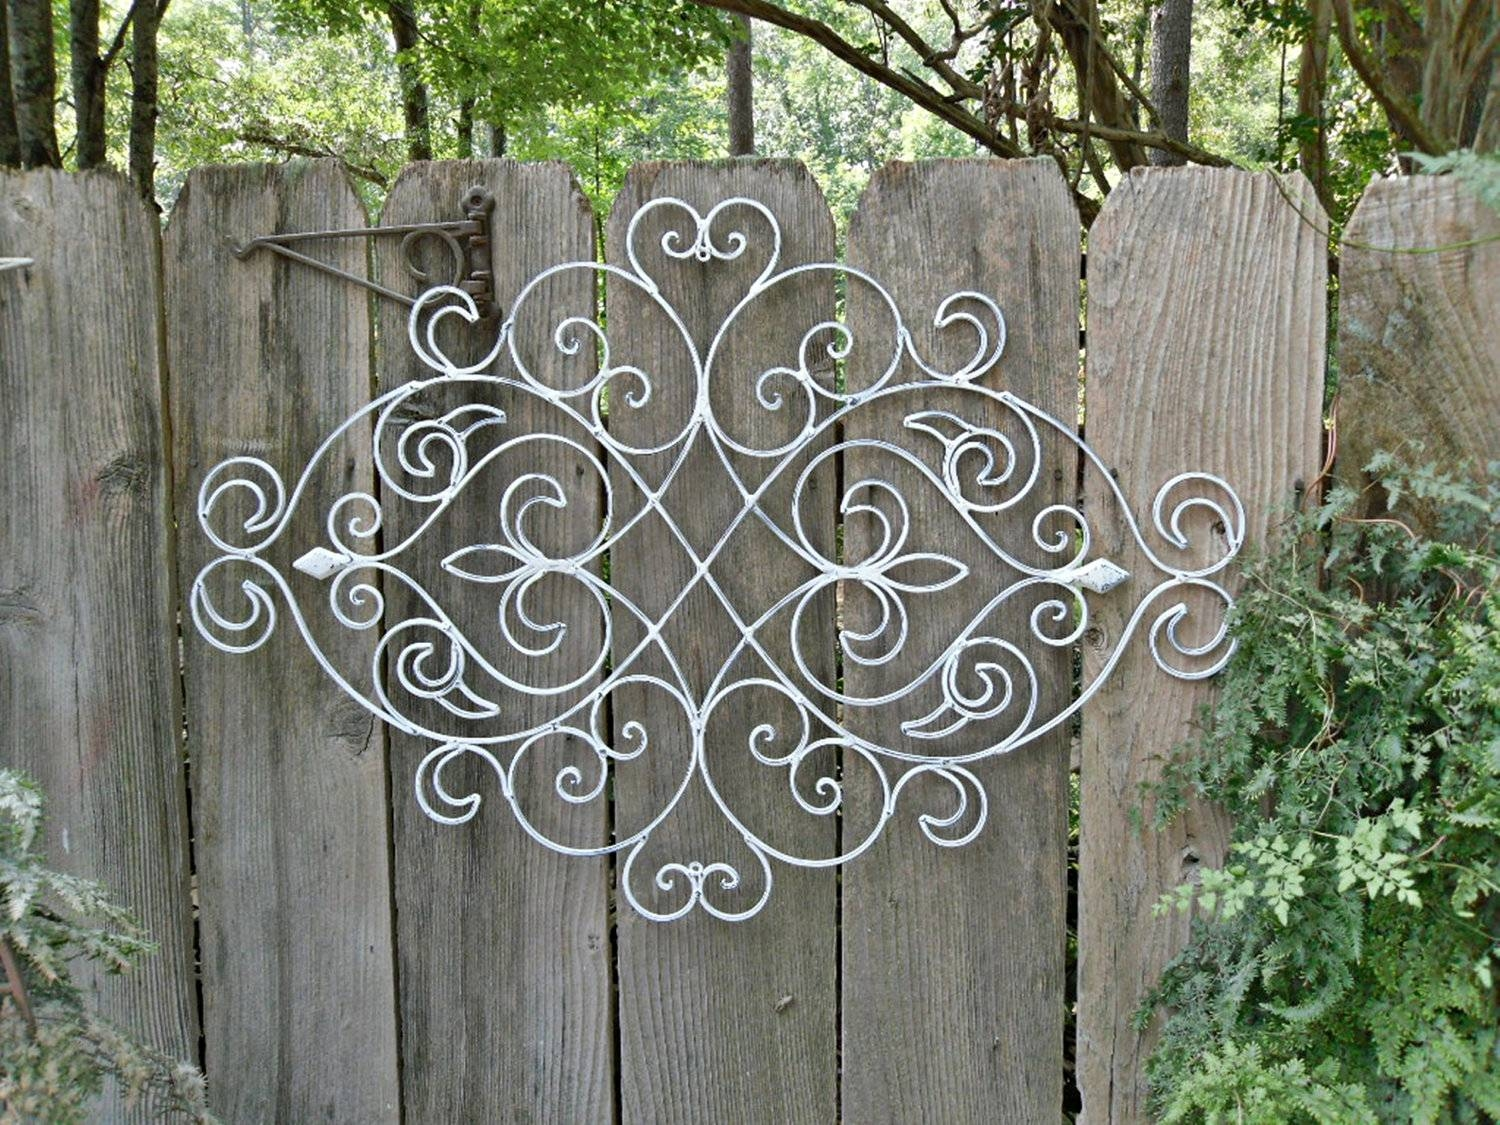 Outdoor Metal Wall Art Design Ideas | Indoor & Outdoor Decor with regard to Newest White Metal Wall Art